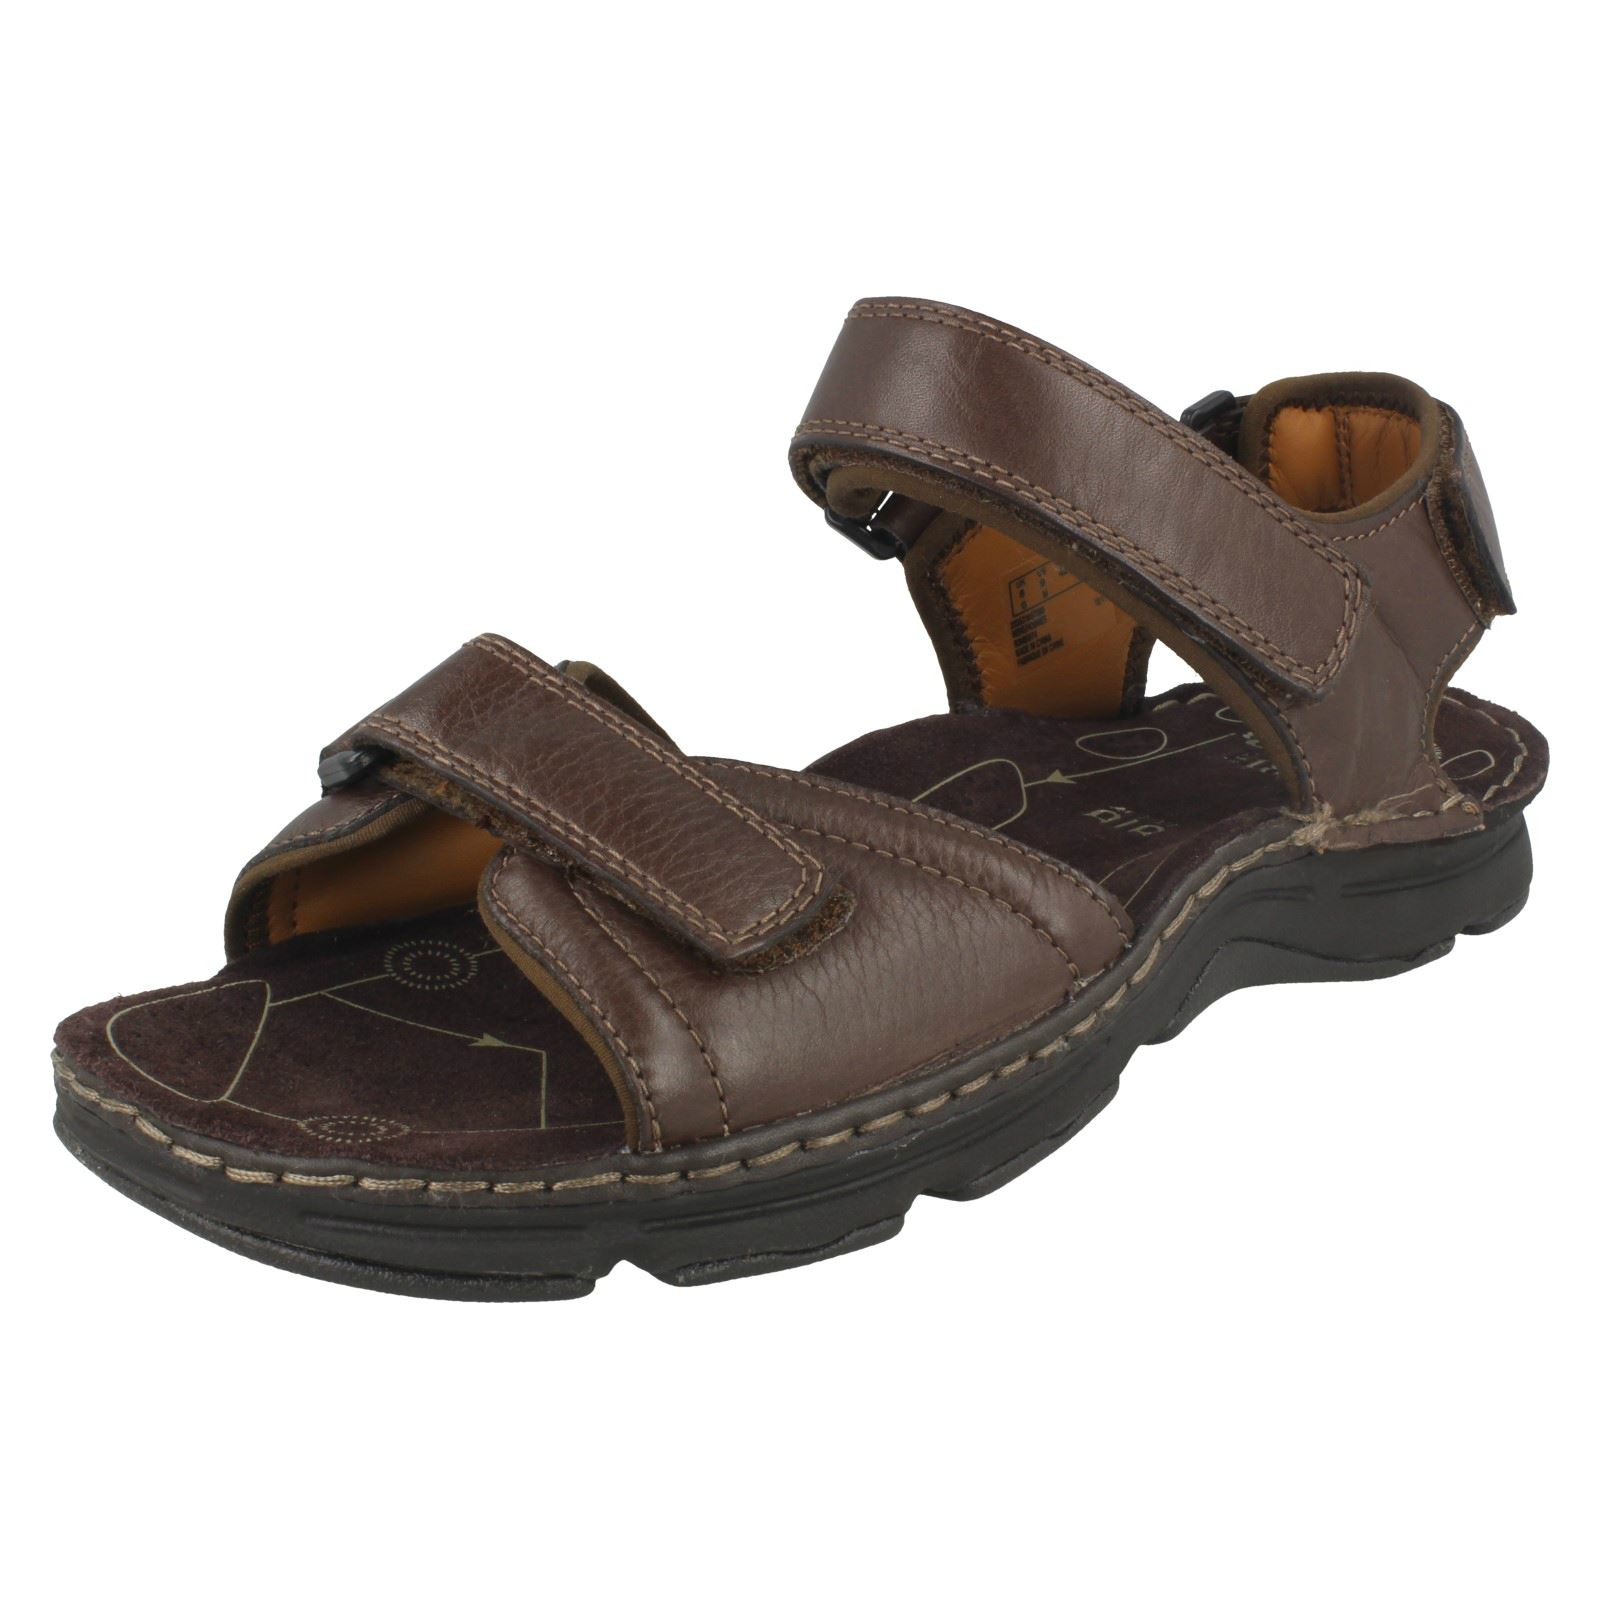 a3c42bffa3b Clarks Mens Active Air Sandals Atl Part